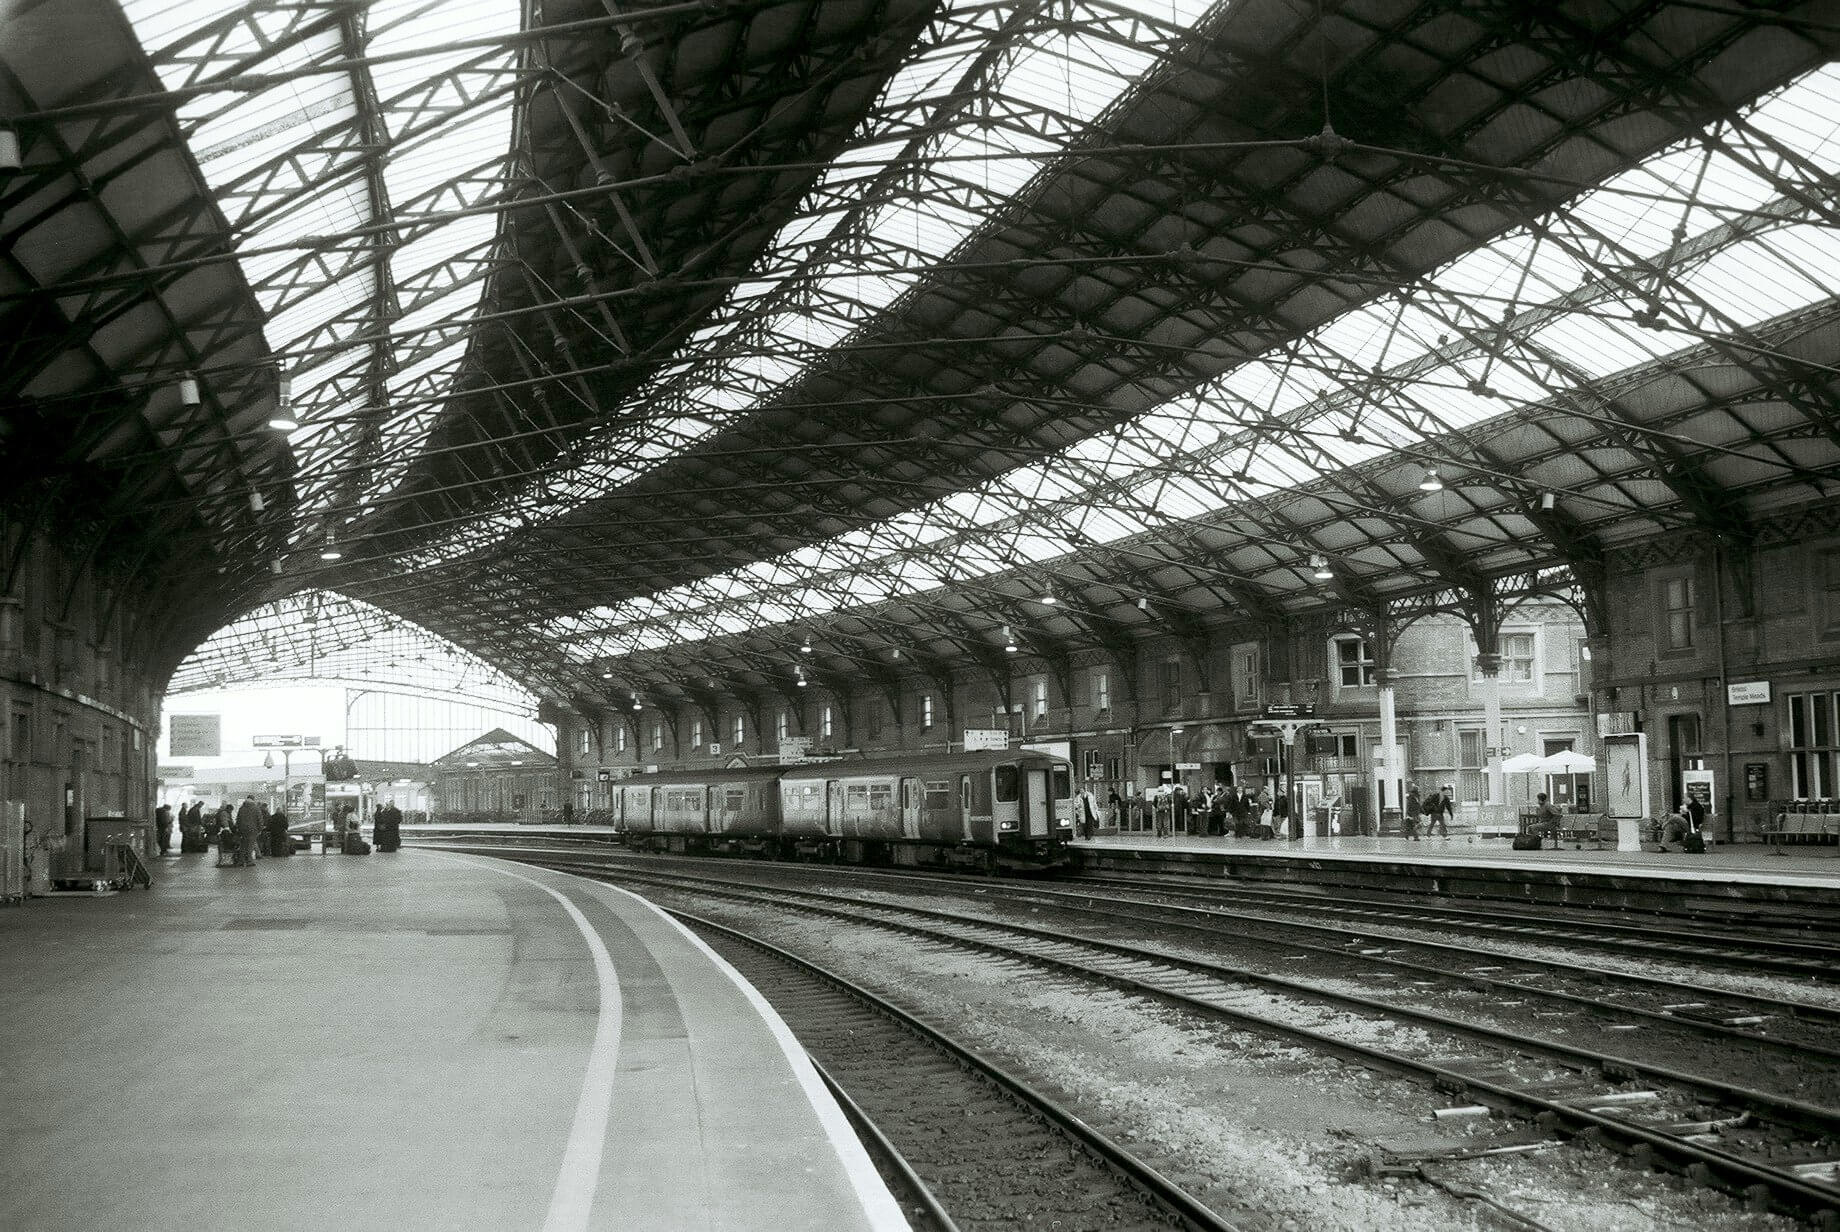 The iconic steel-glass roof in 1878. A style that can been seen at London Paddington as well as Bristol Temple Meads.